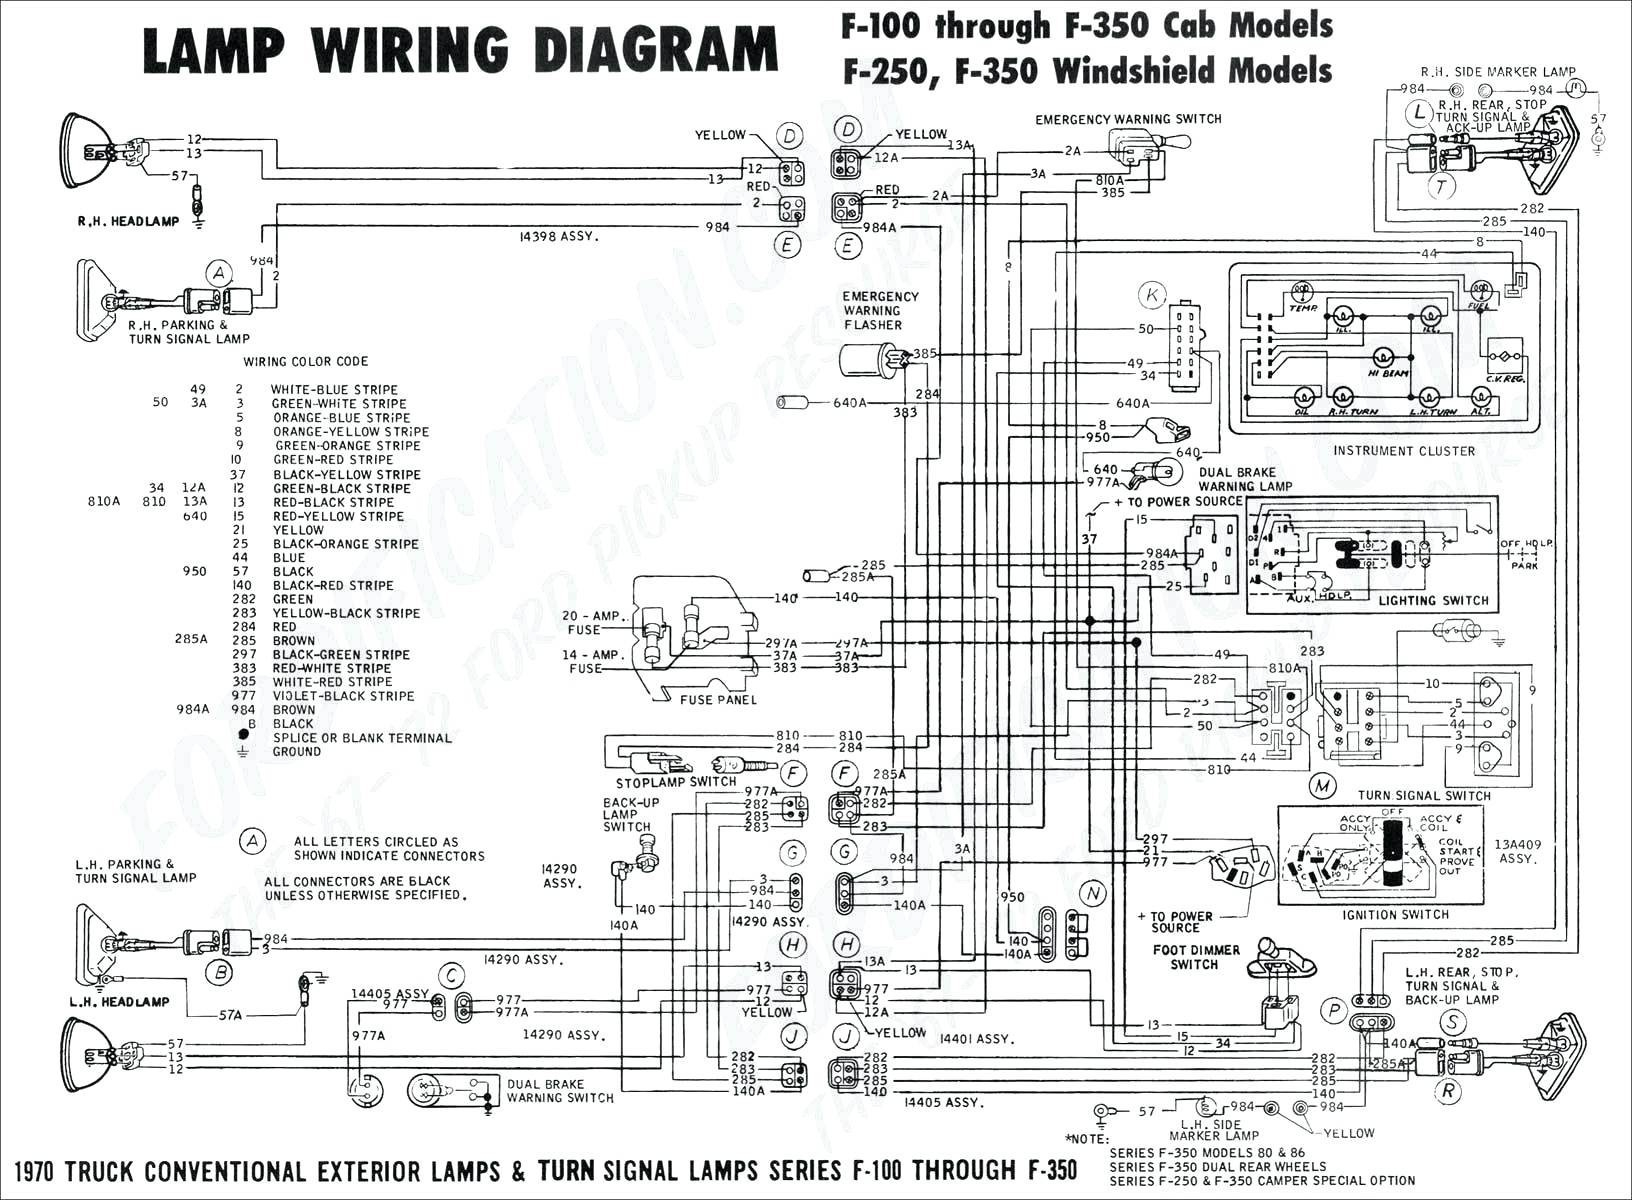 Ford Taurus Wiring Digram For Cooling Fans